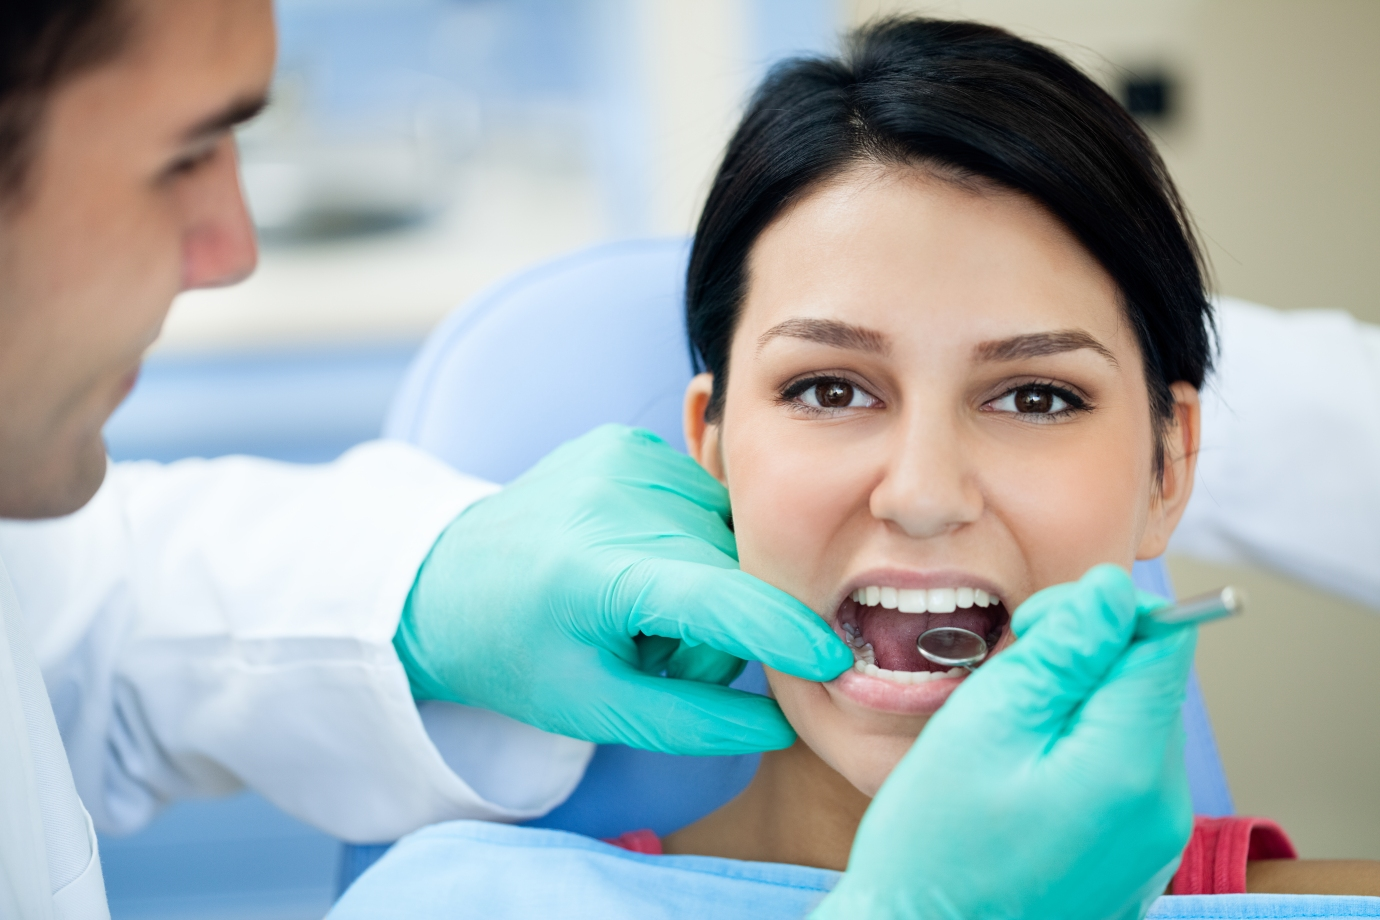 Newport Beach Oral Surgery